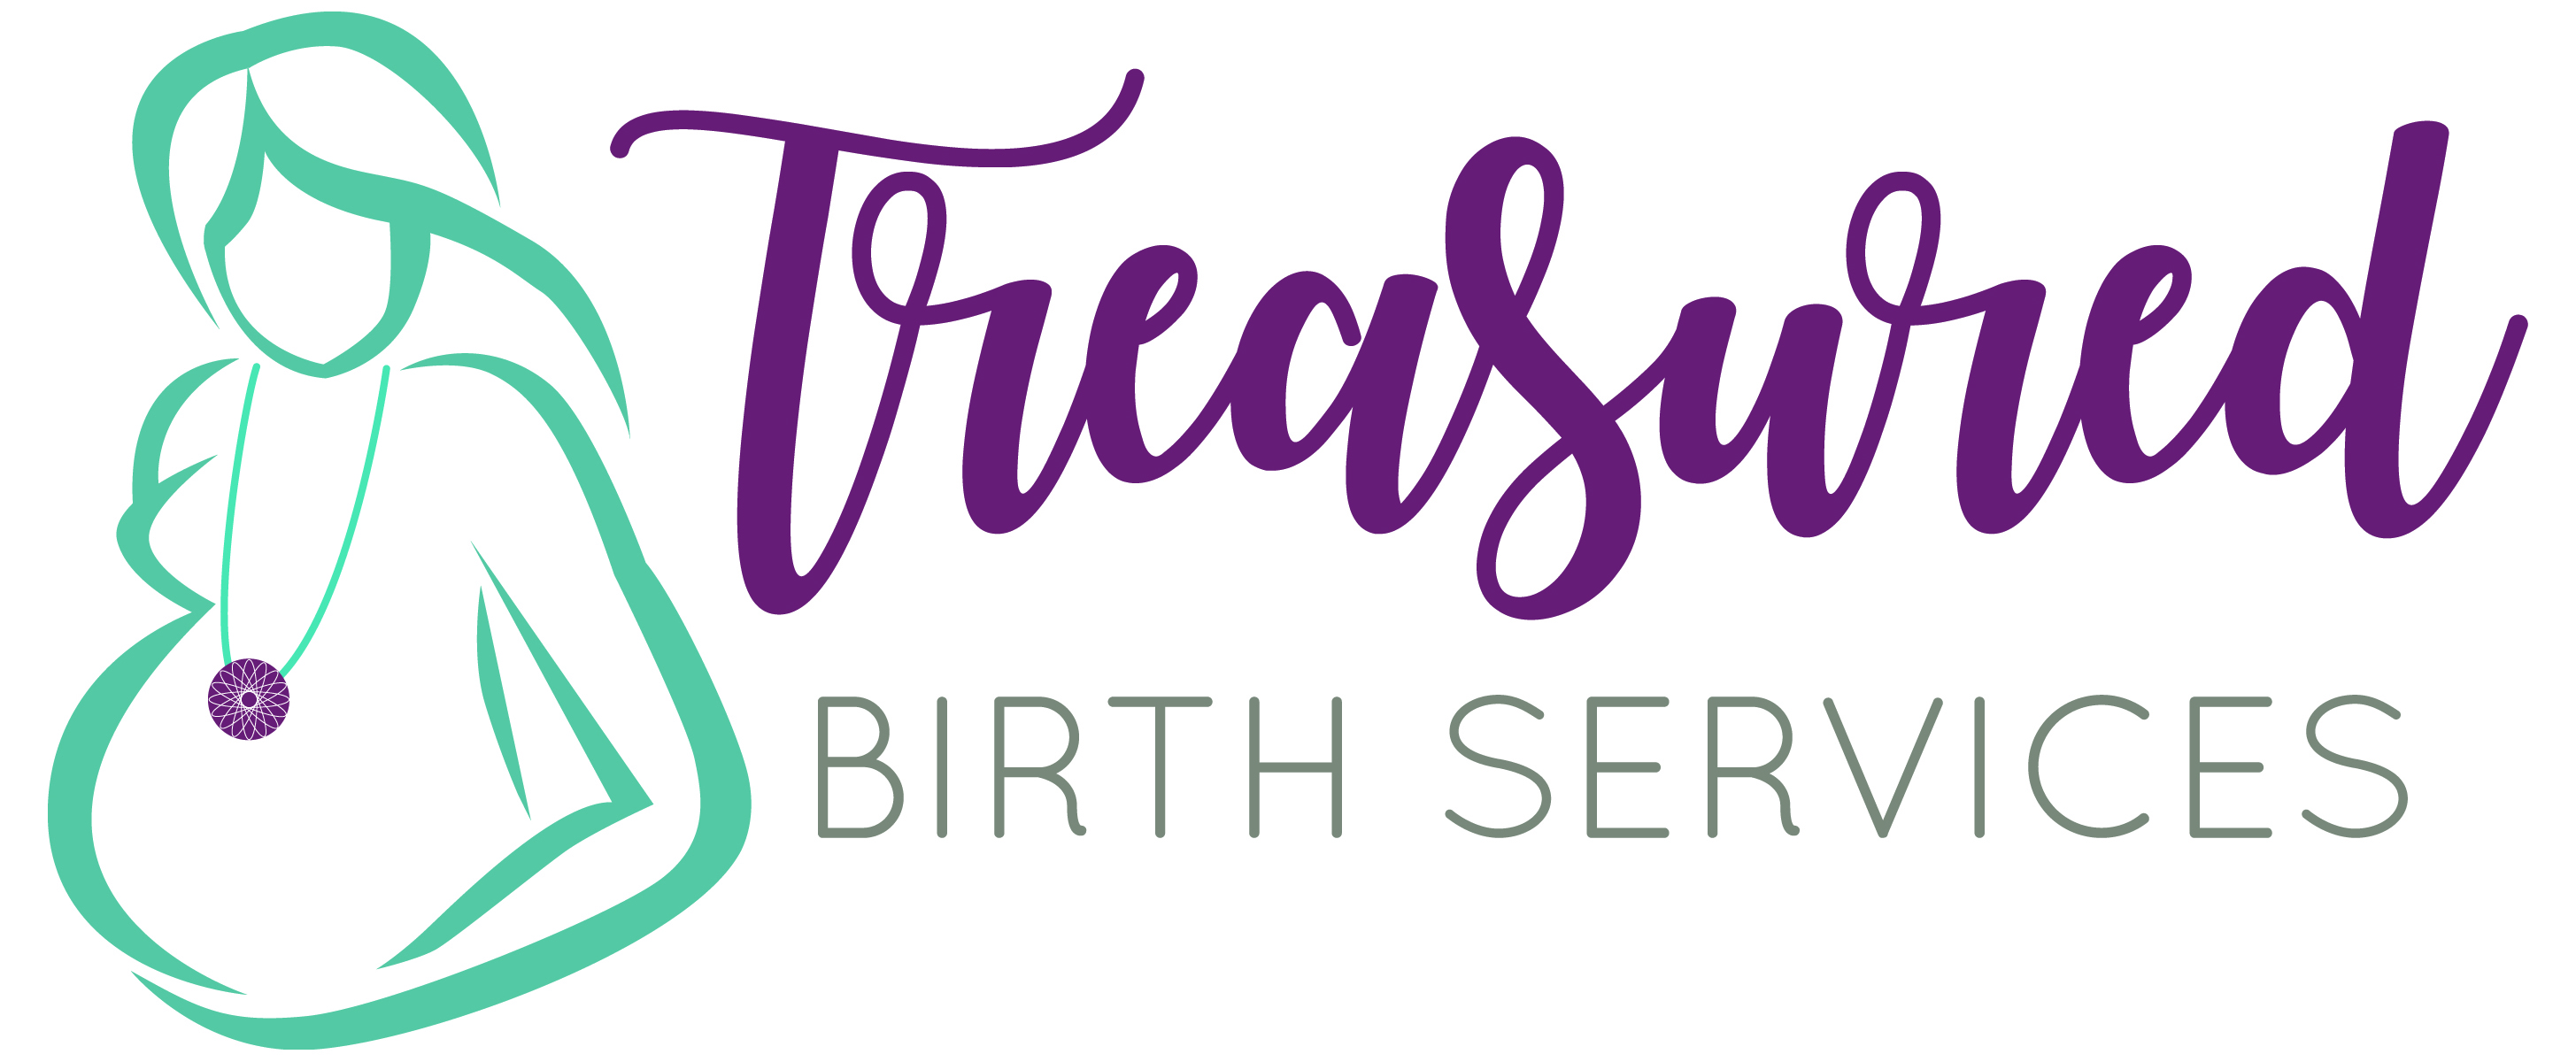 Treasured Birth Services – Utah Birth Services – Hanan Webster – Birth Boot Camp Birth Doula, Belly Binding, and Childbirth Education